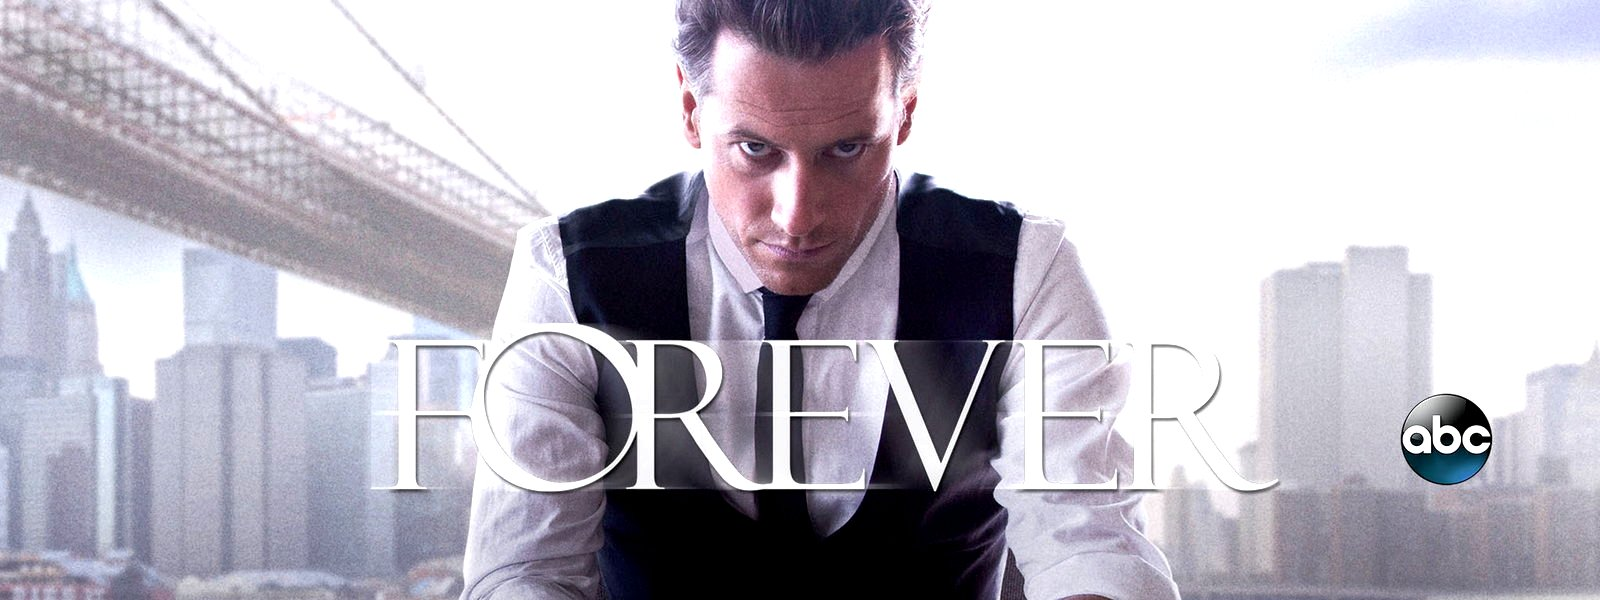 Info-tainment Kenya: #FOREVER TV SERIES---Quotes